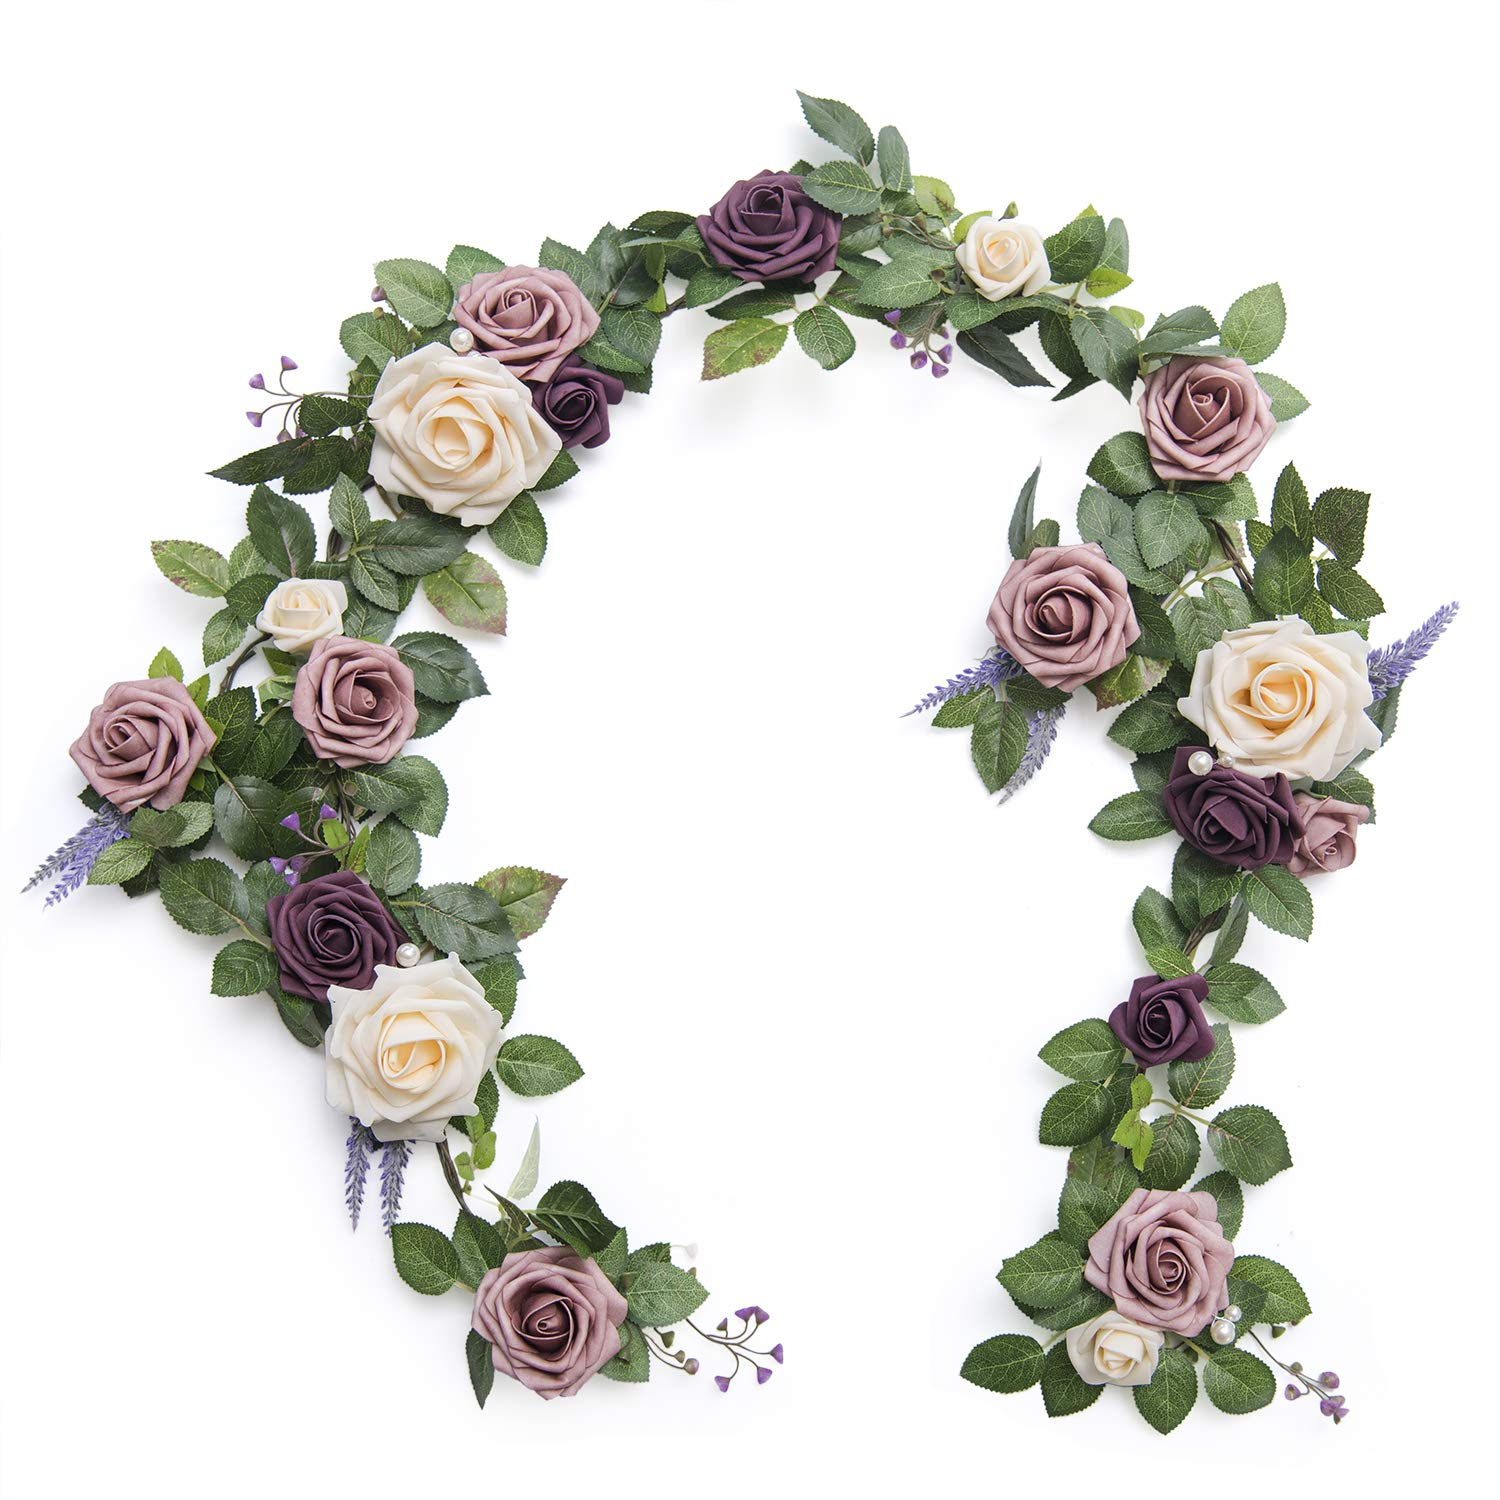 Ling's moment Handcrafted 5ft Full Rose Flower Runner Garland for Wedding Table Centerpiece Arch Canopy Decoration